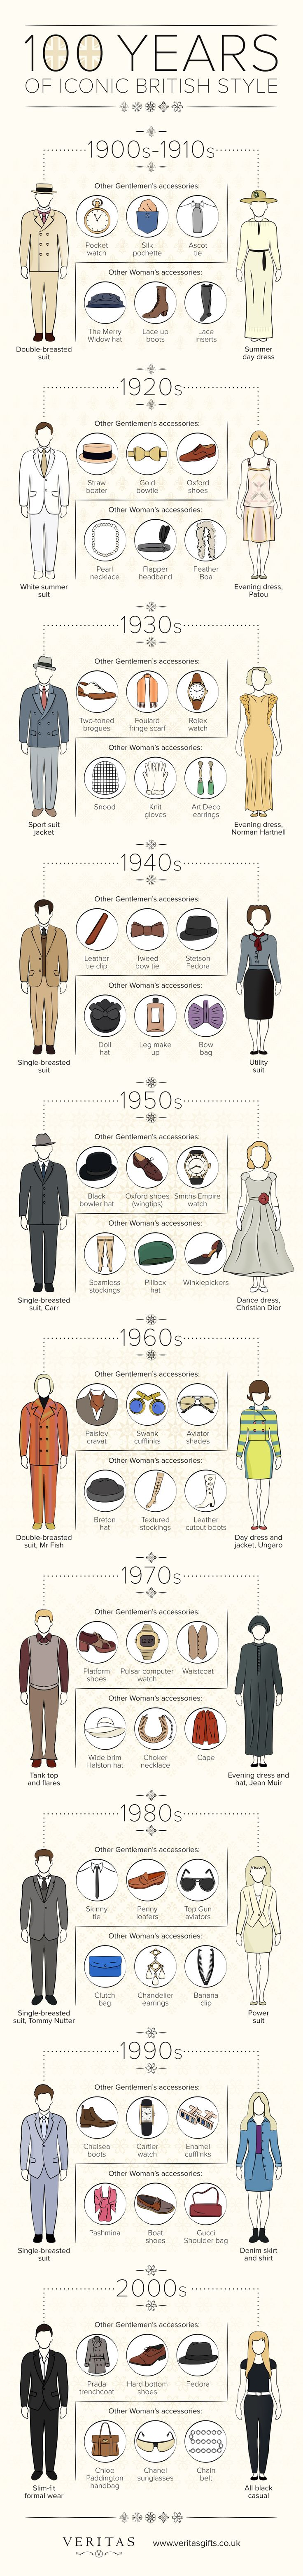 100 Years of Iconic British Style #Infographic #Fashion #LifeStyle. 100 Años de icónica del estilo británico